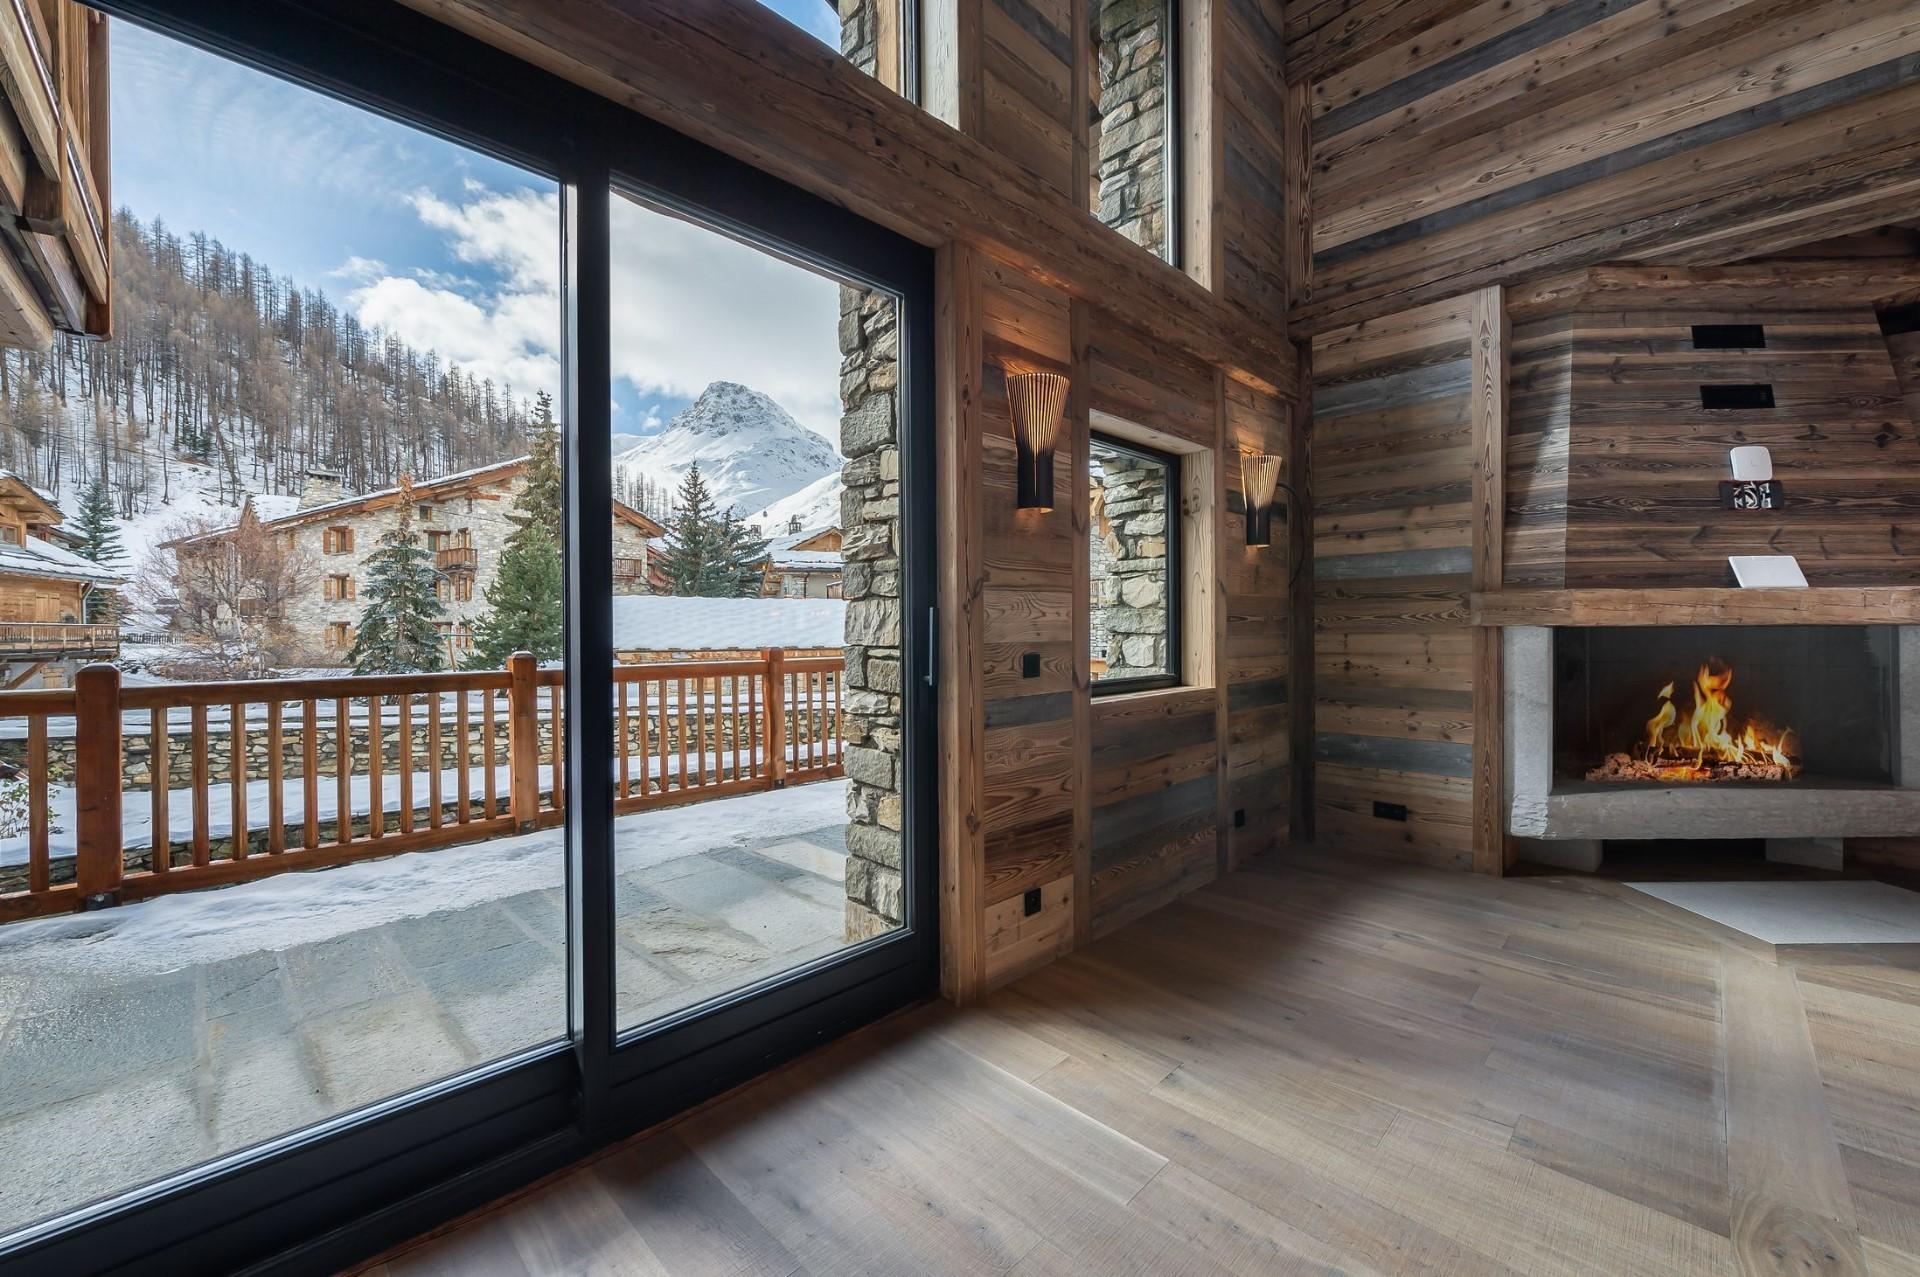 SUPERB CHALET WITH VIEW